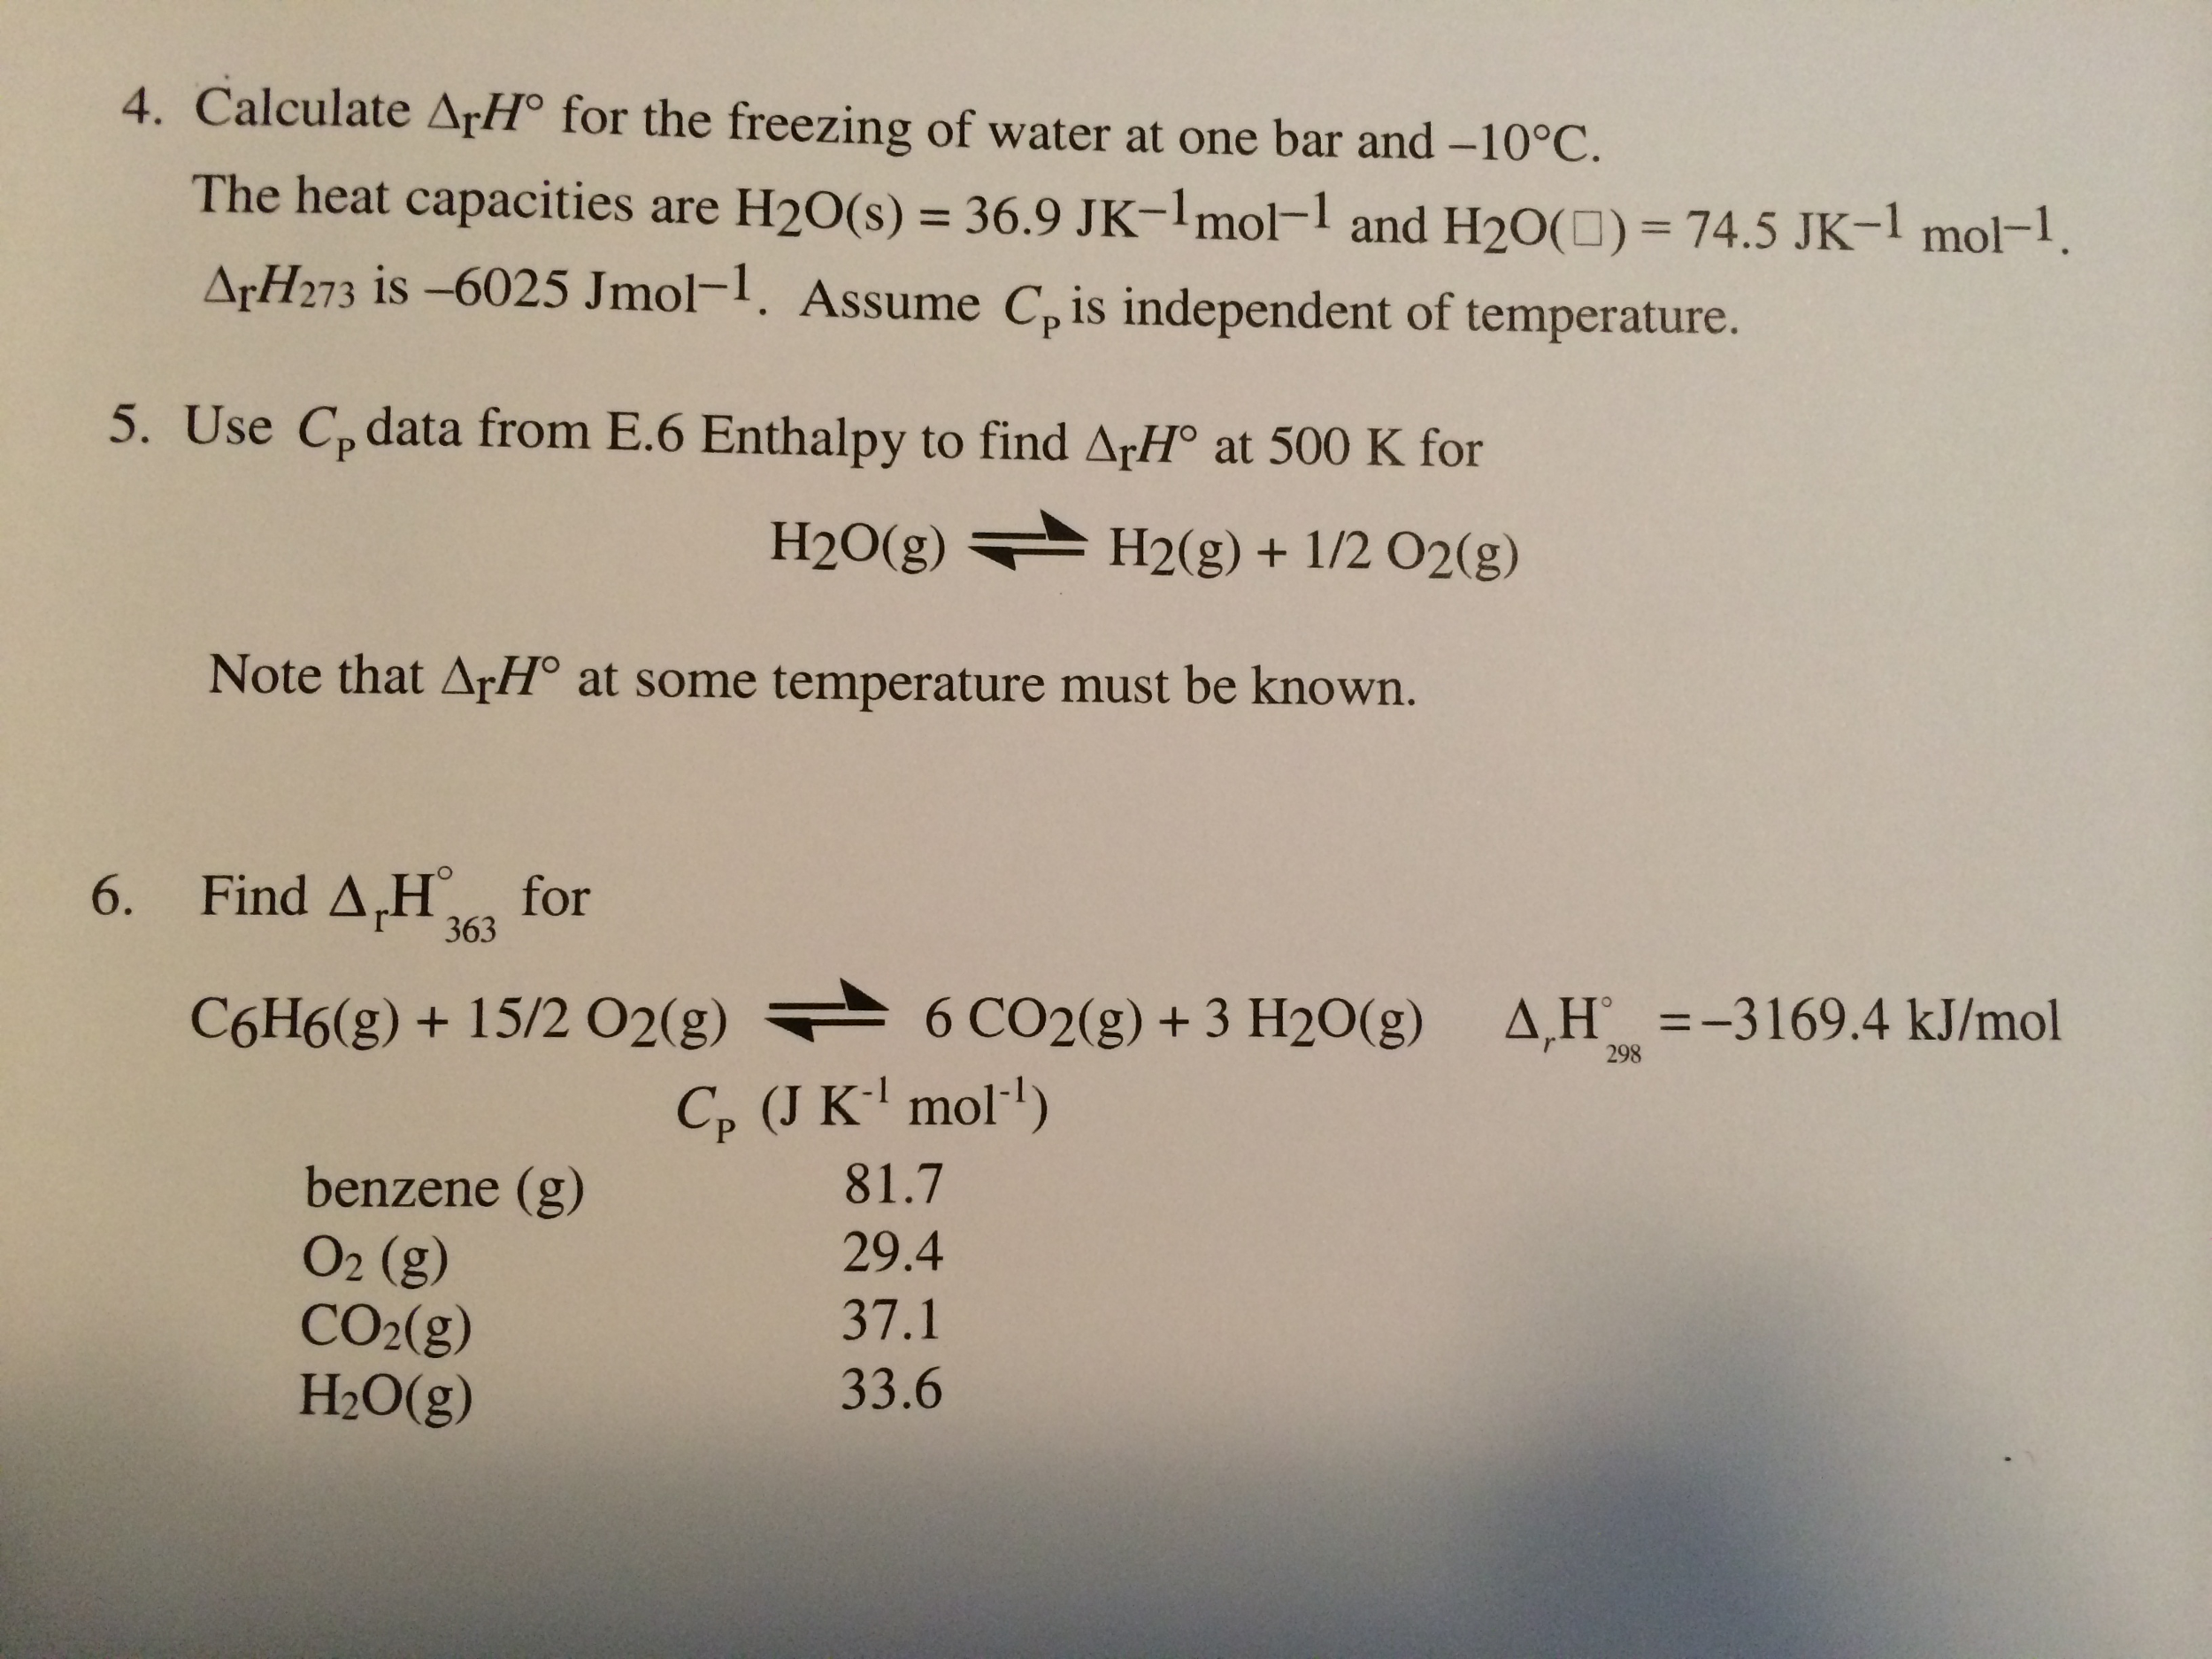 I need help with these questions?